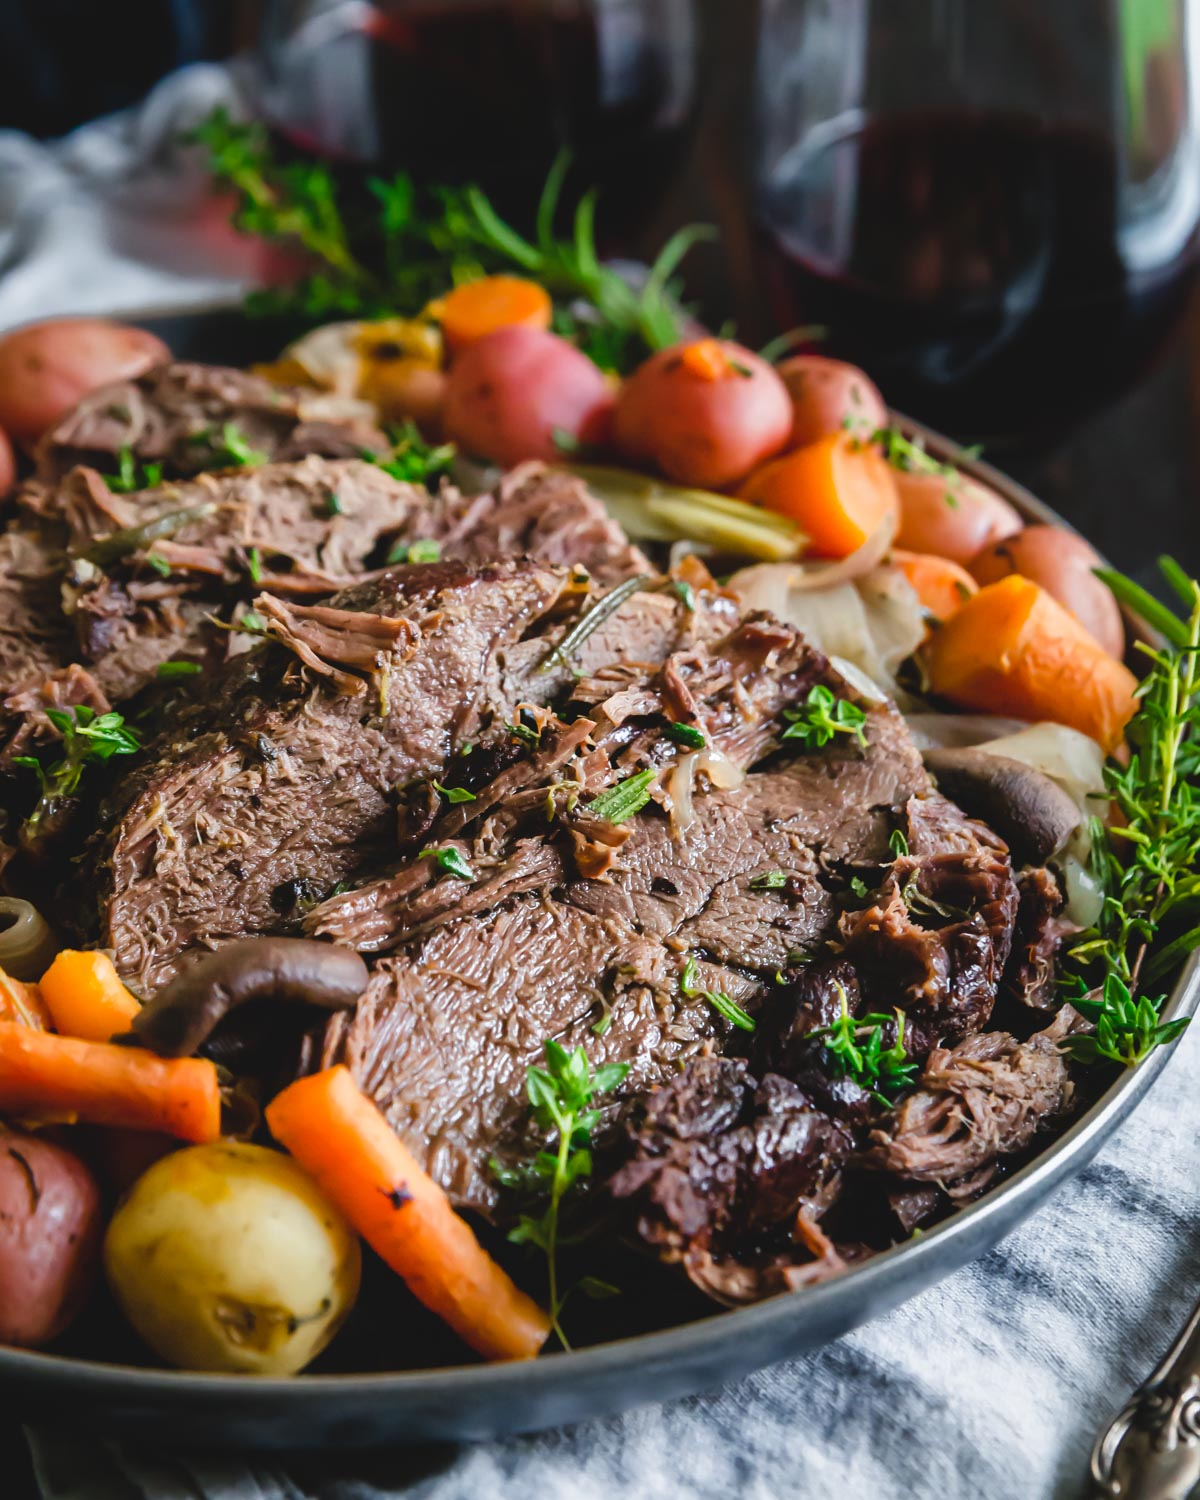 Red wine balsamic venison roast is a simple served with carrots, onions, mushrooms and potatoes and cooked in the Instant Pot until fork tender.